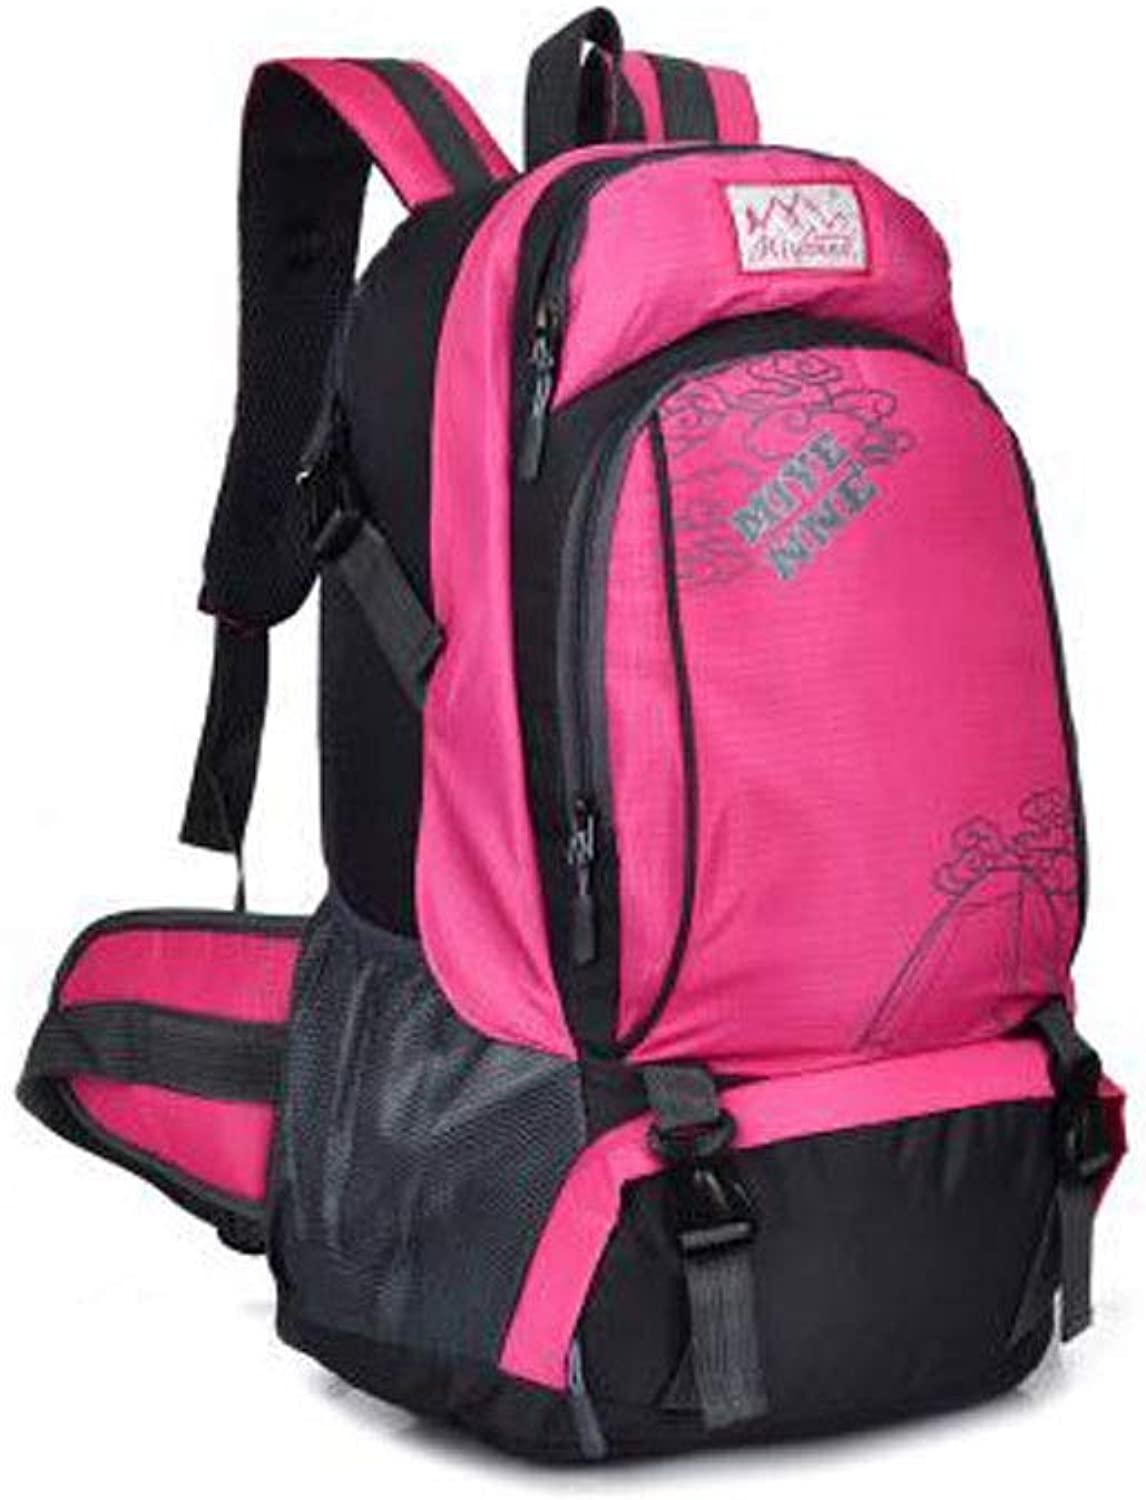 HENG LargeCapacity Backpack, Outdoor Mountaineering Bag Travel & Hiking Backpack, Sports Bag, Travel & Hiking Backpack,Black, pink Red, Red, Yellow, bluee, Green for Hiking, Traveling & Camping